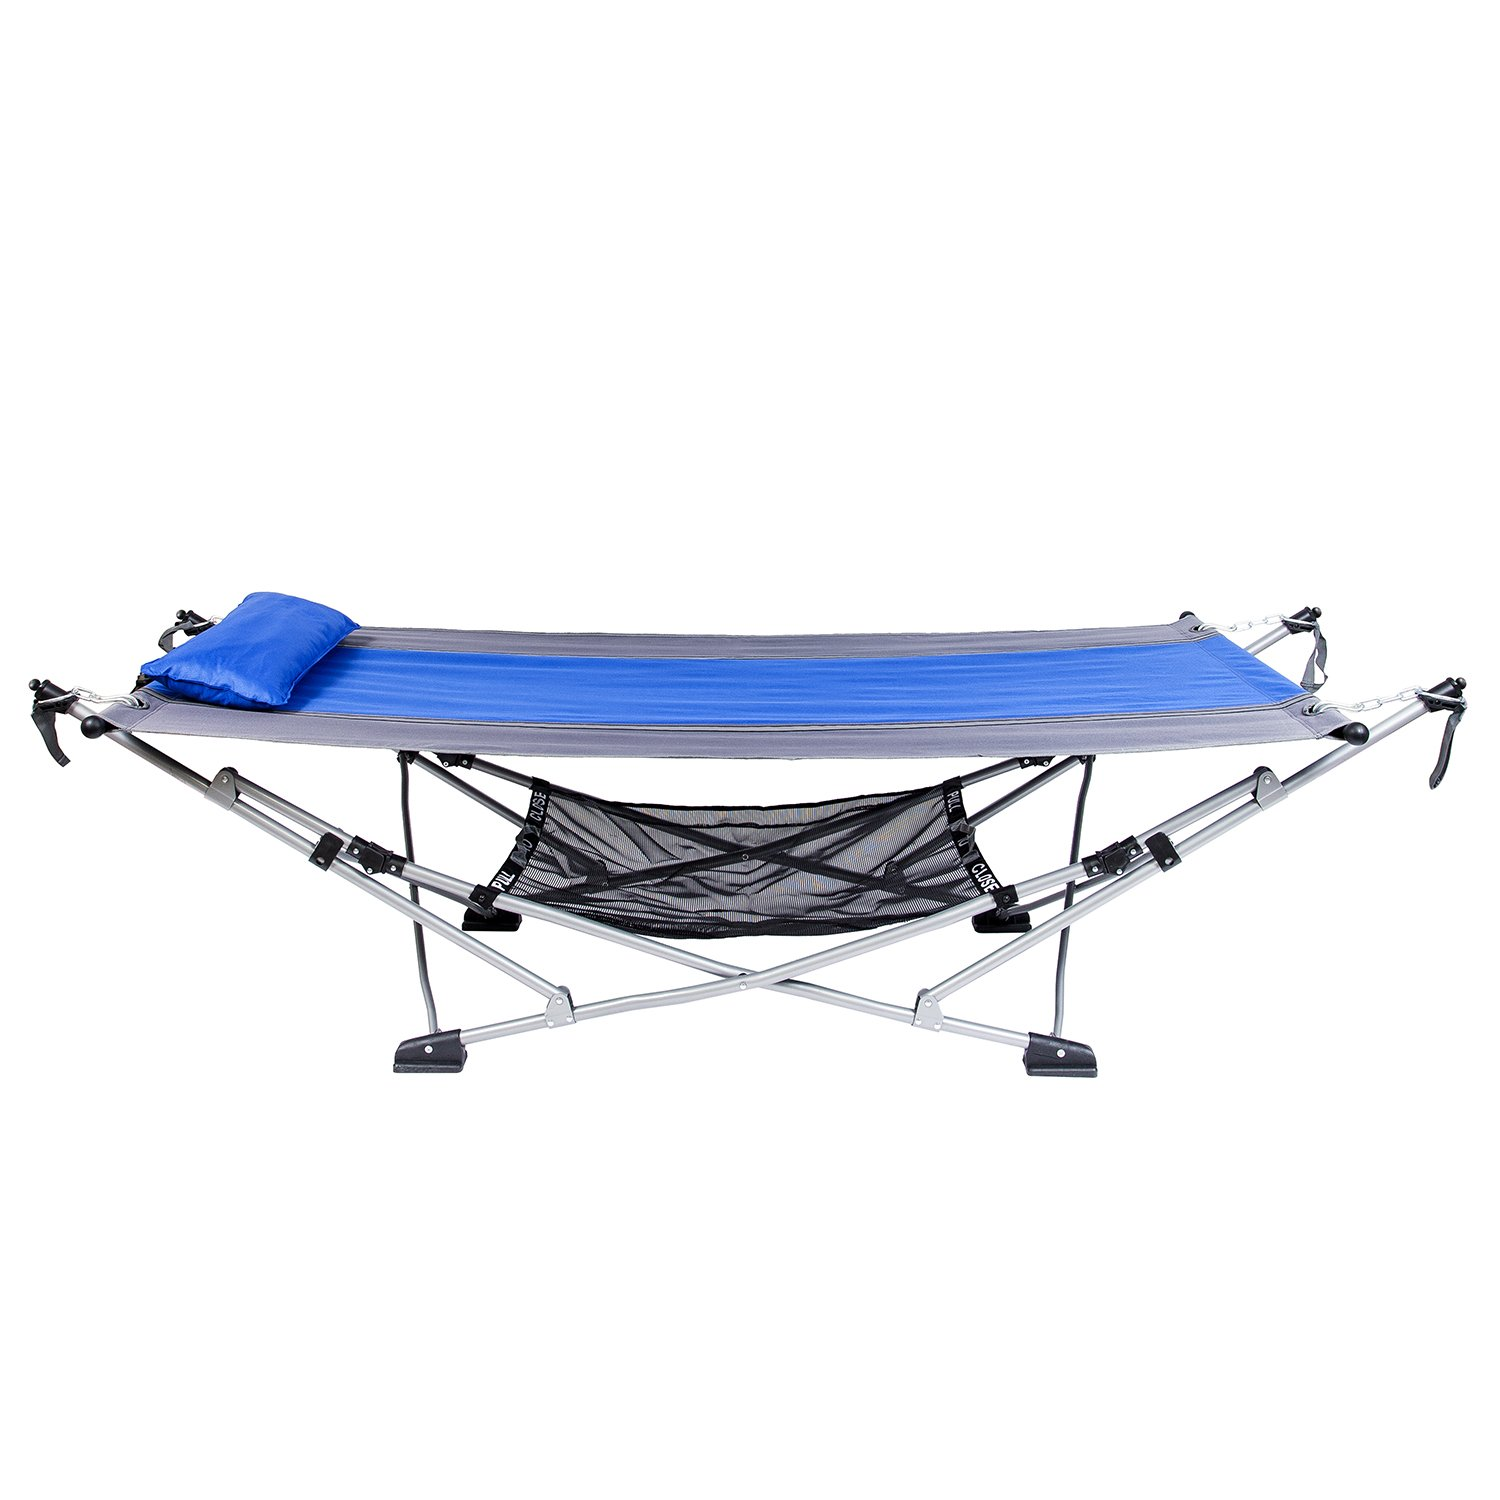 Lovely Amazon.com : Mac Sports Portable Fold Up Hammock With Removable Canopy U0026  Carry Case : Garden U0026 Outdoor